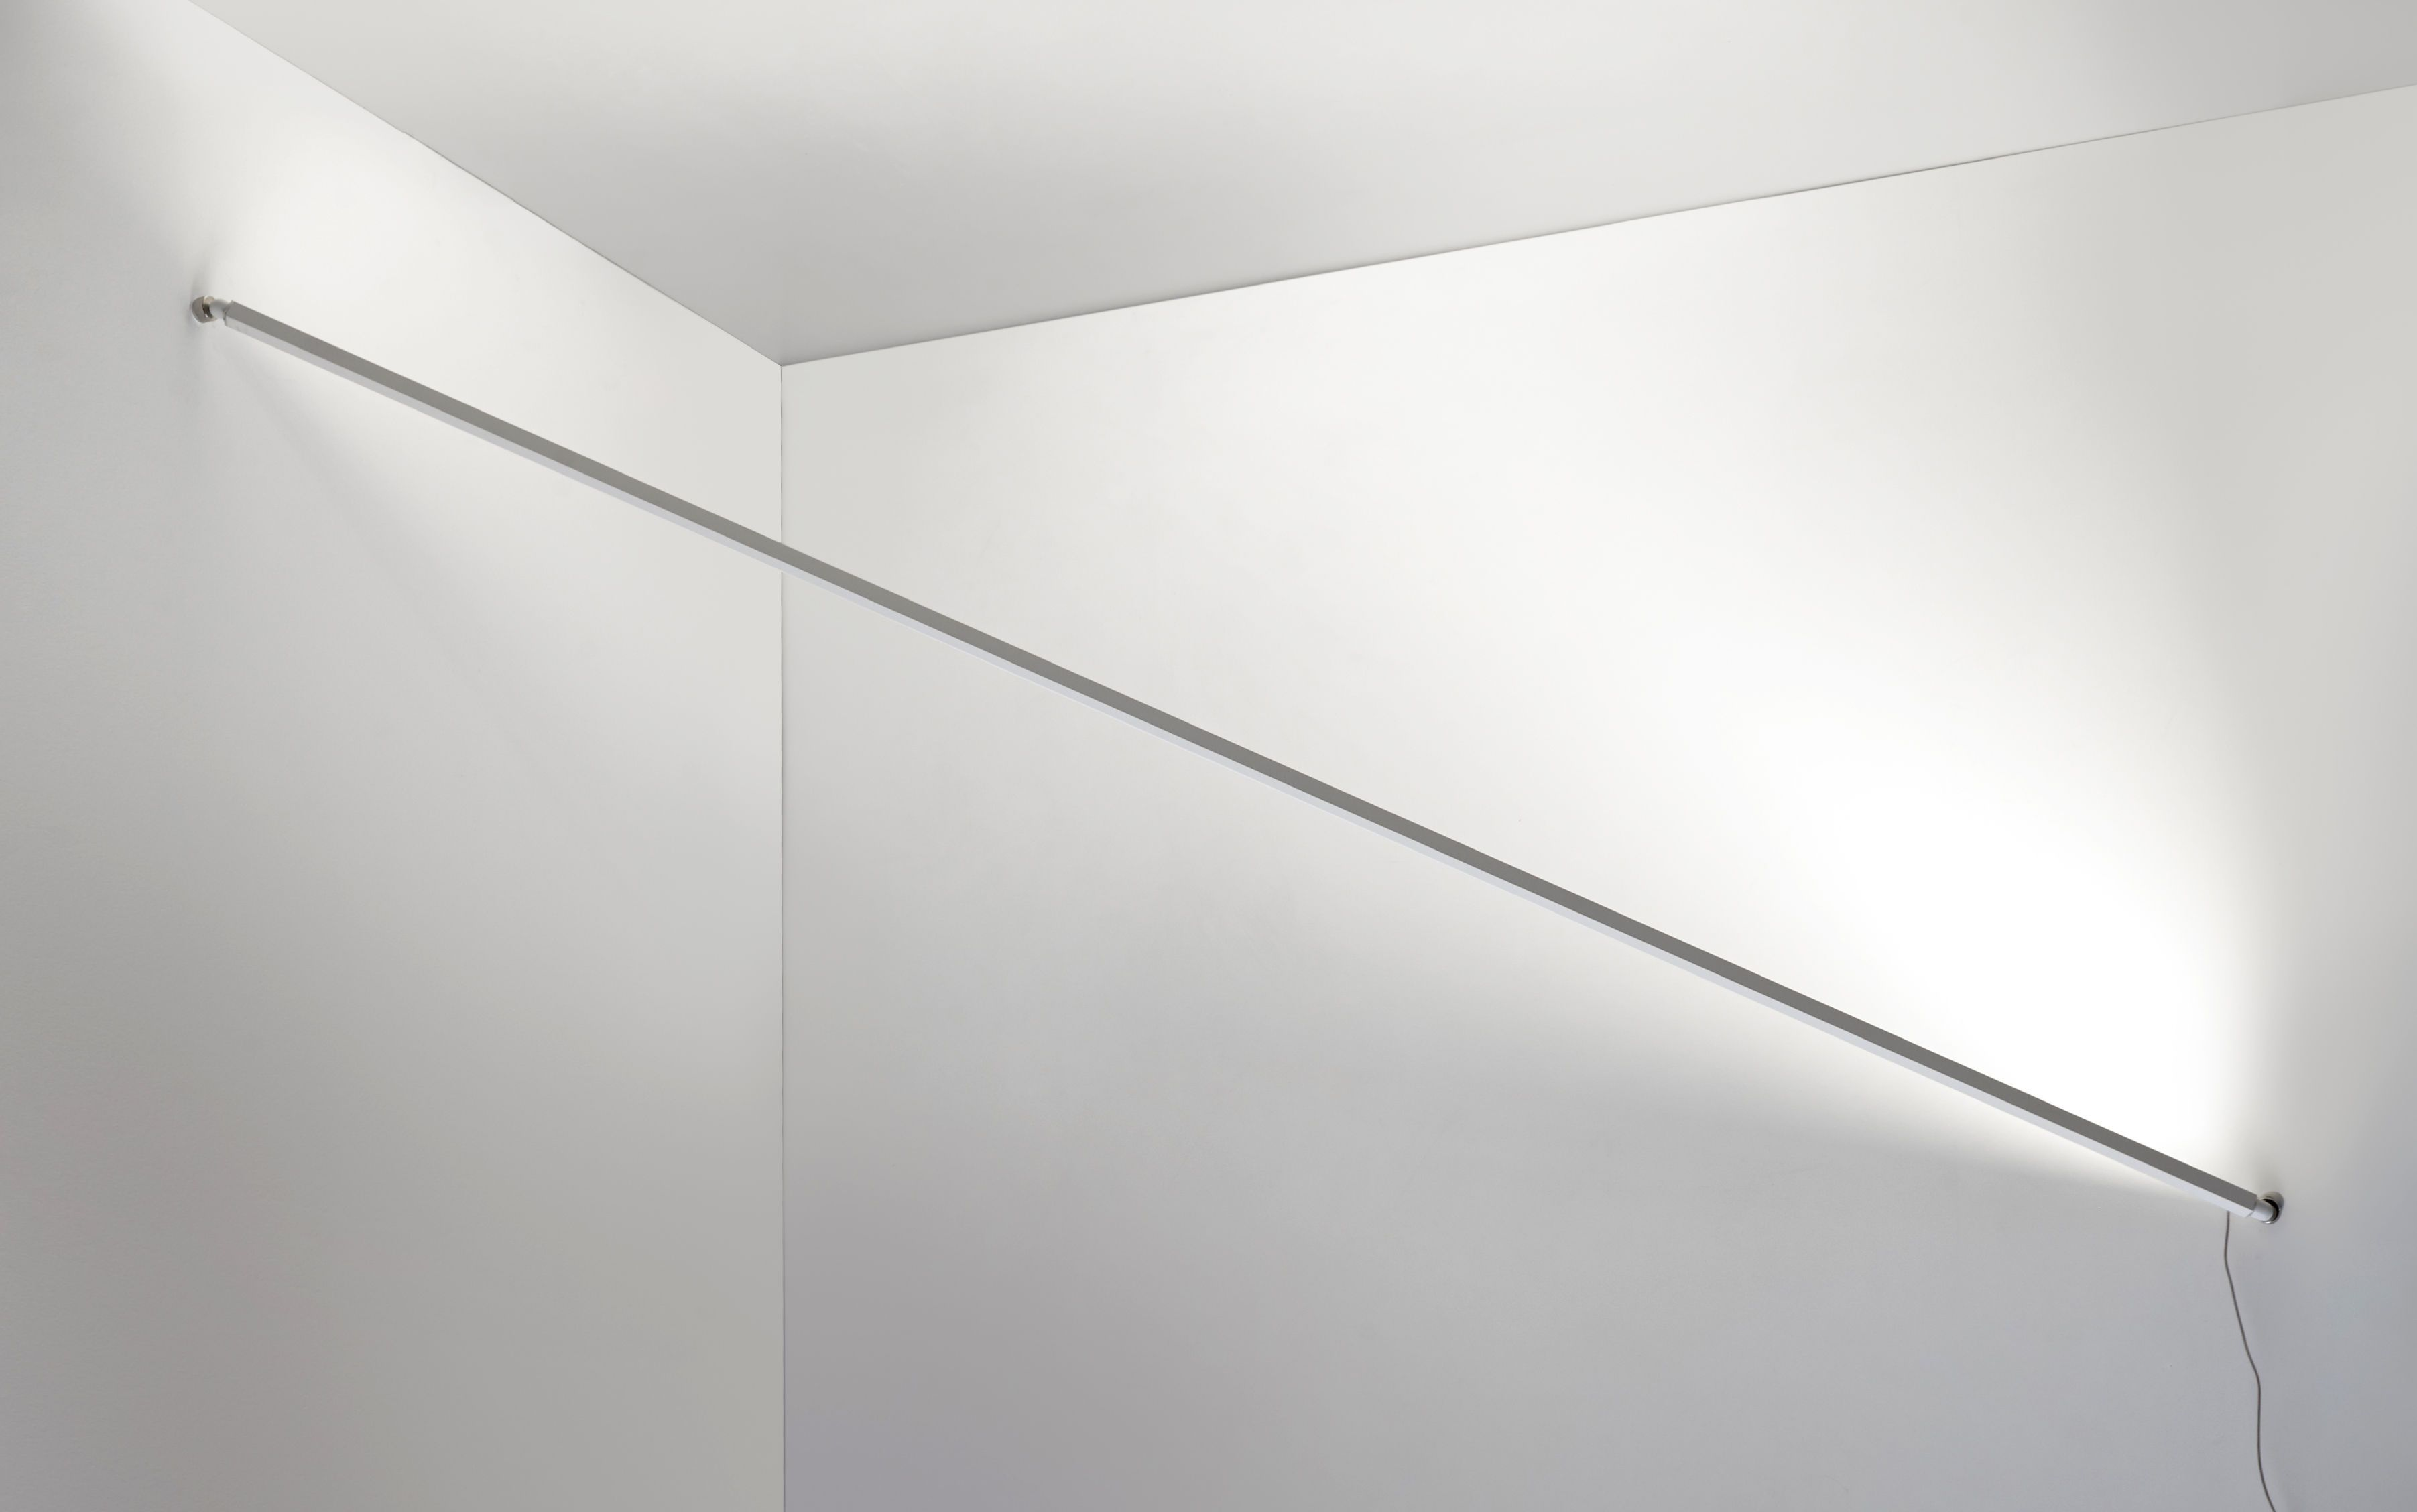 Led wall lamp mimik by performanceinlighting